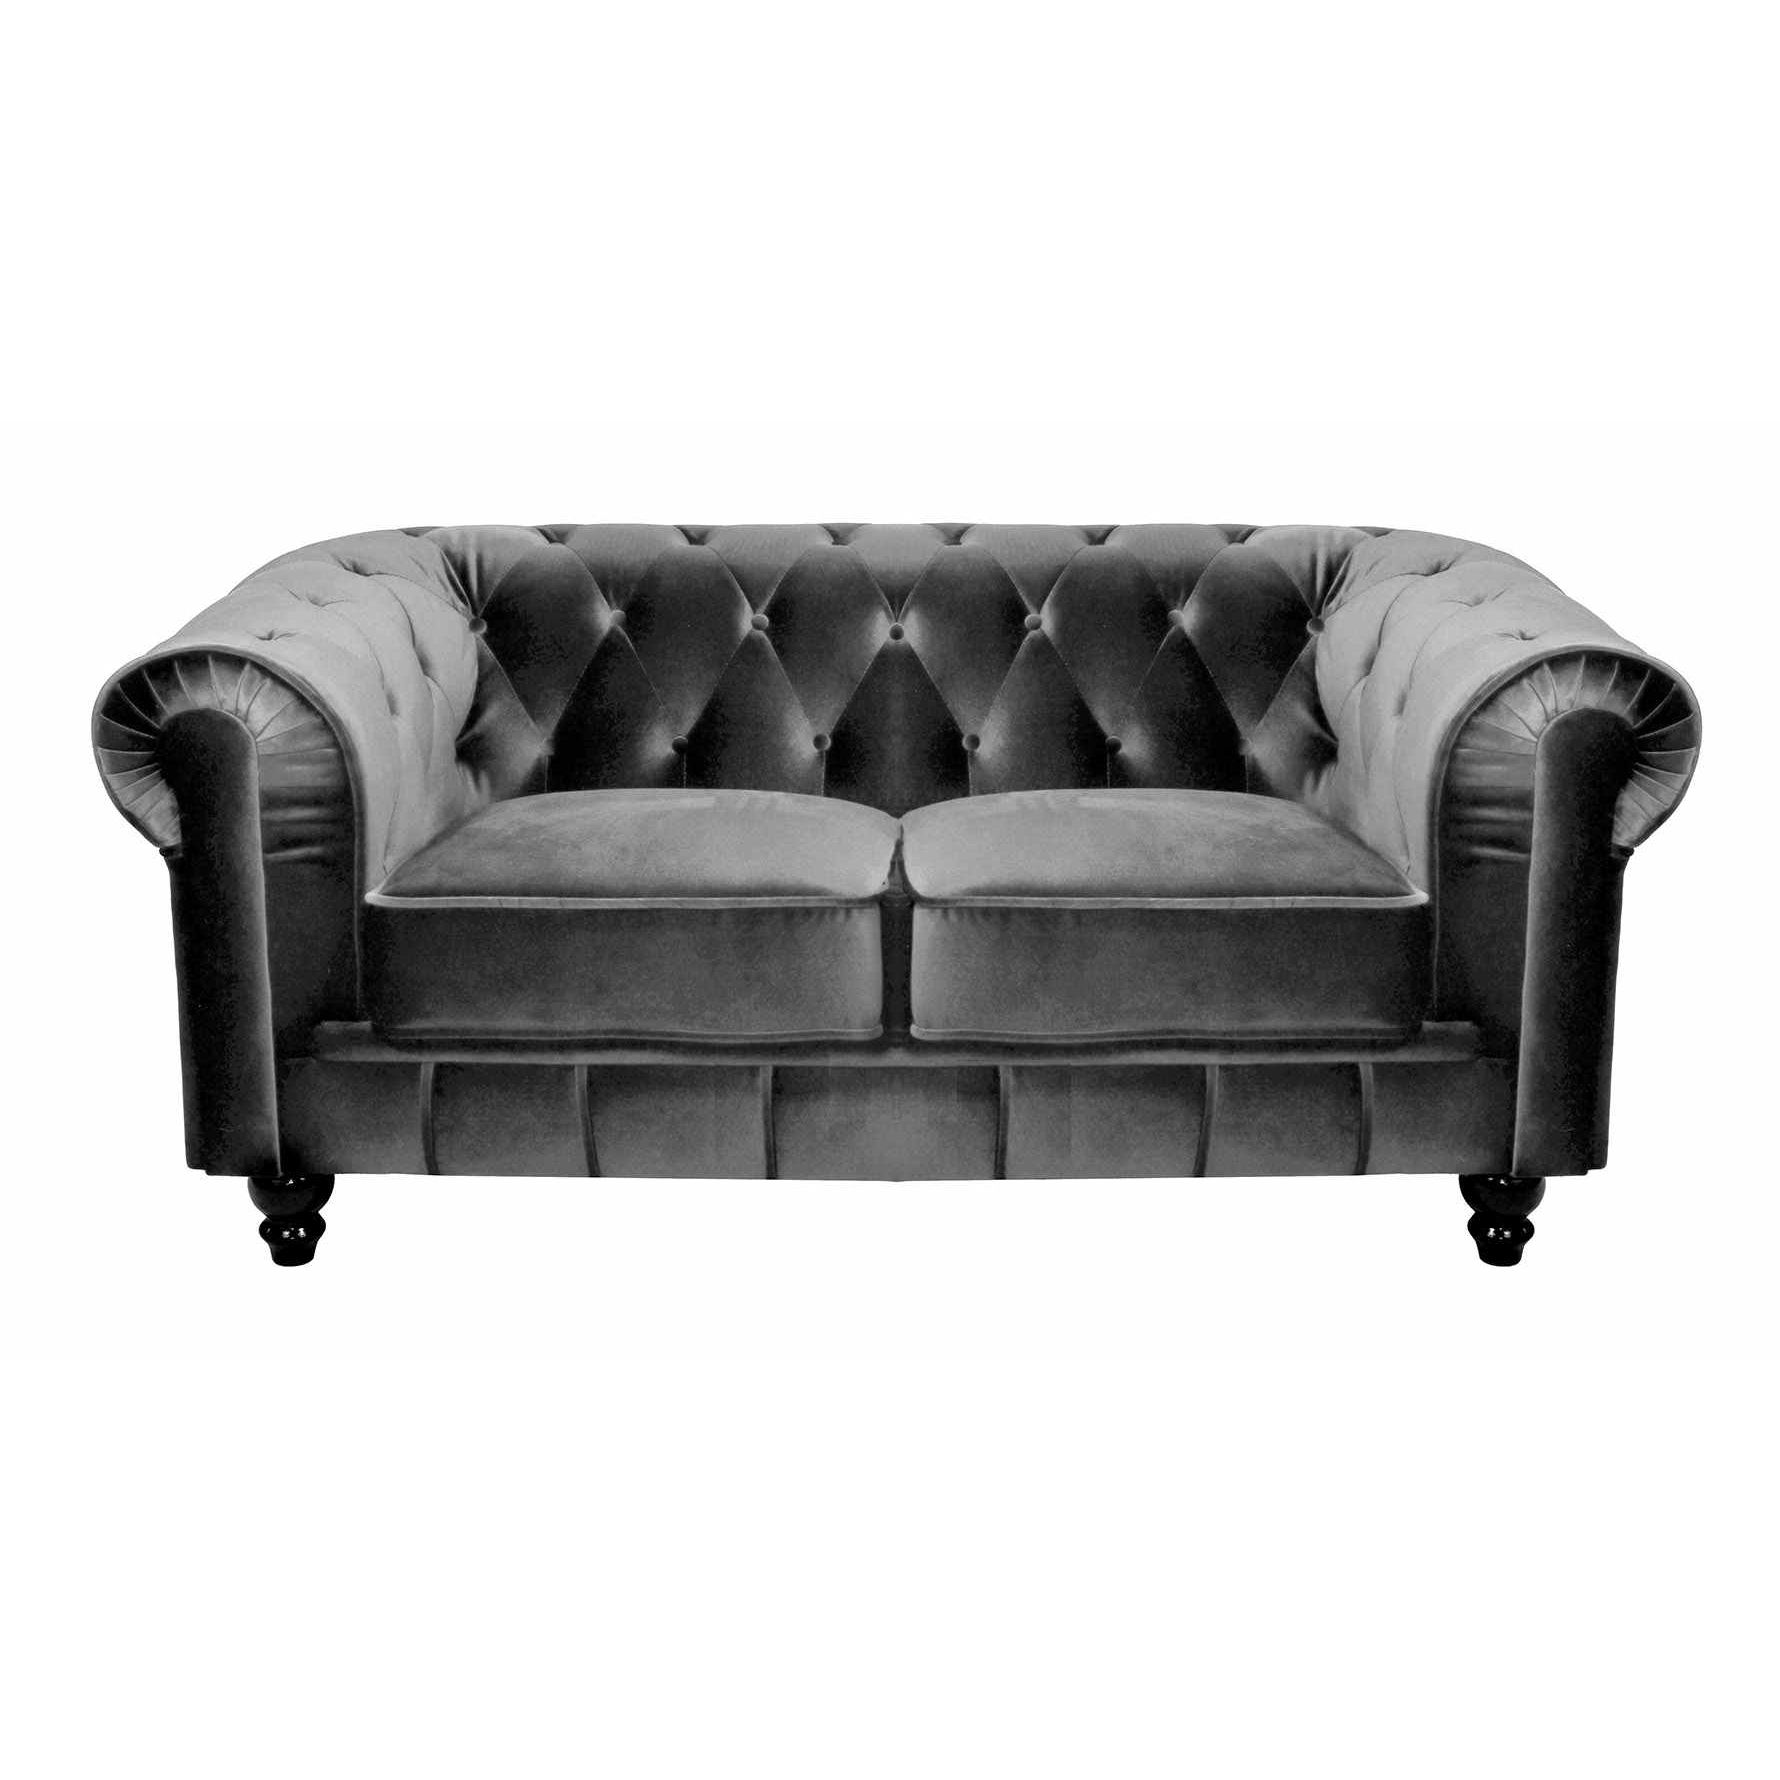 Deco in paris canape 2 places velours gris chesterfield for Chesterfield canape